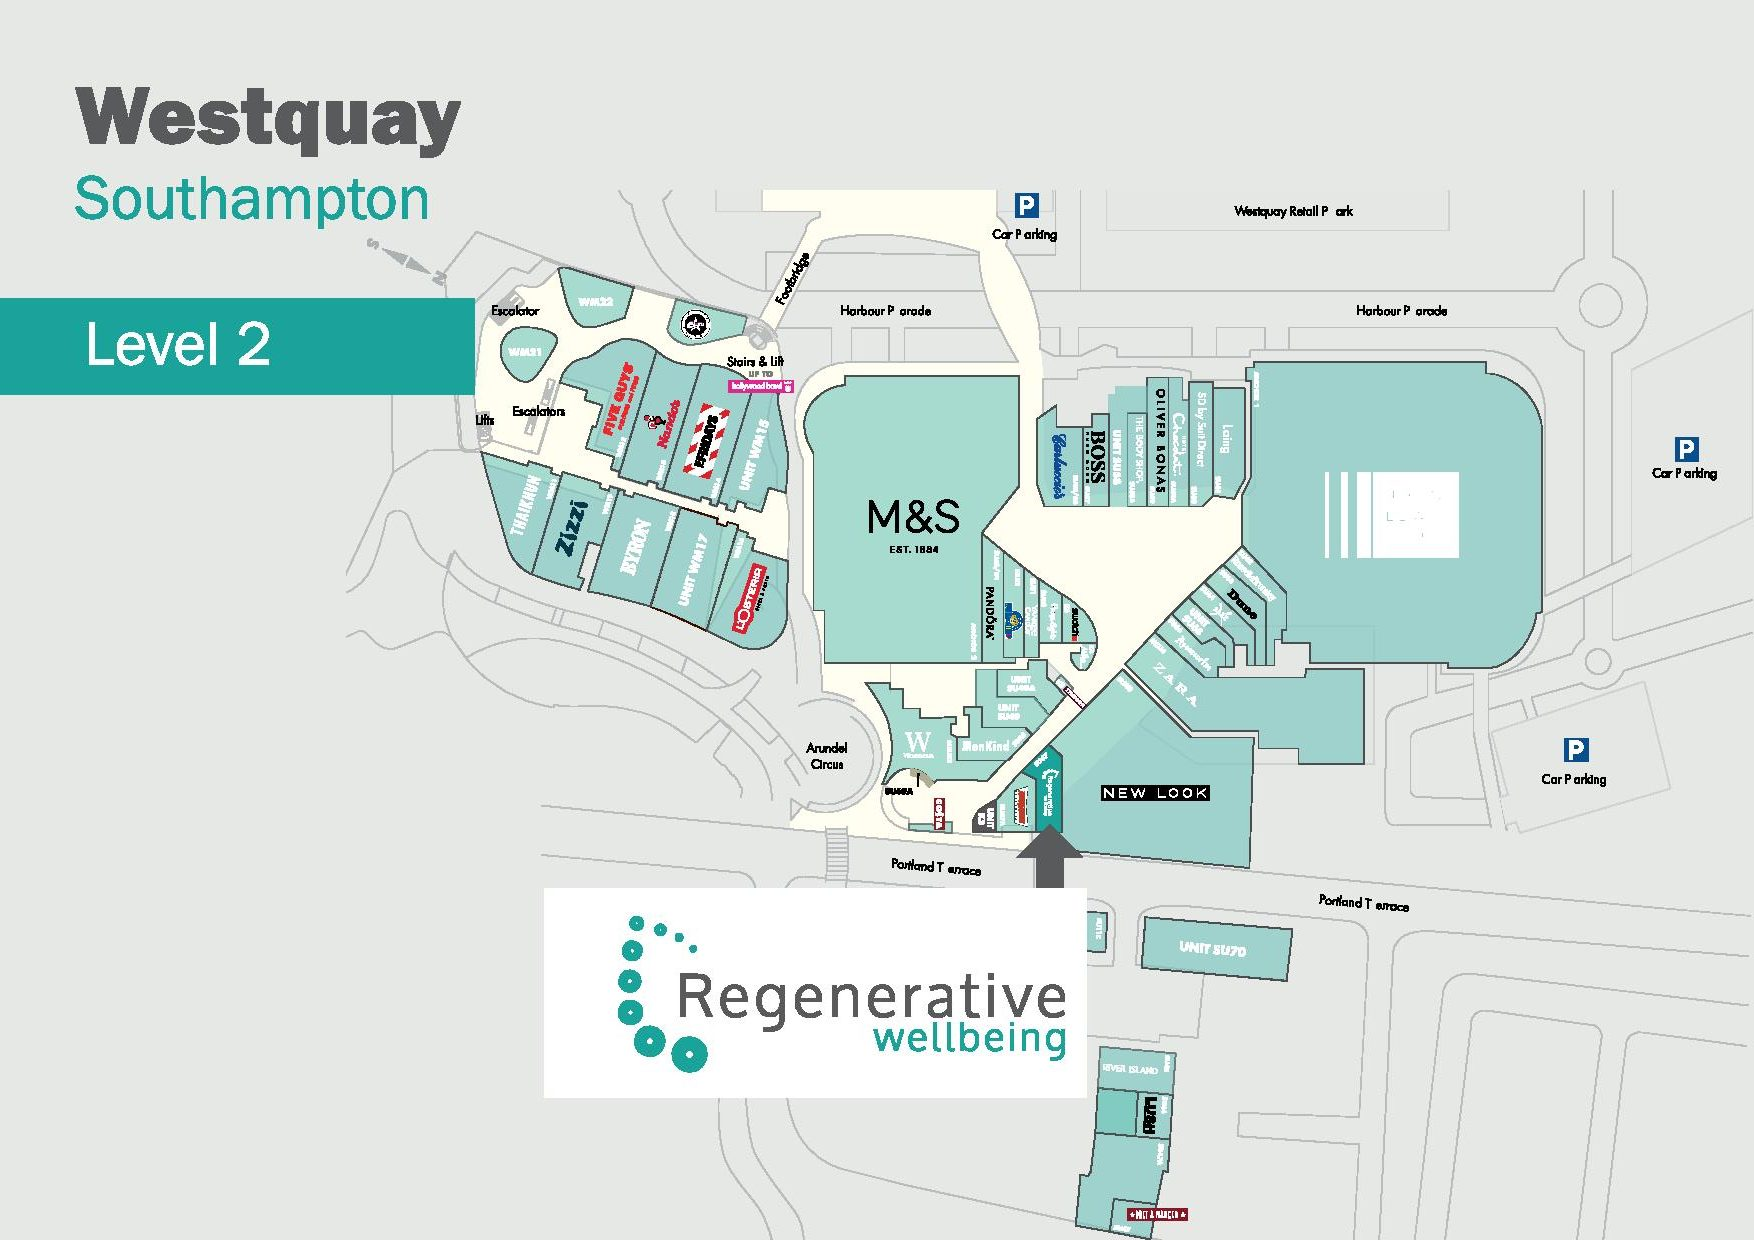 Westquay map